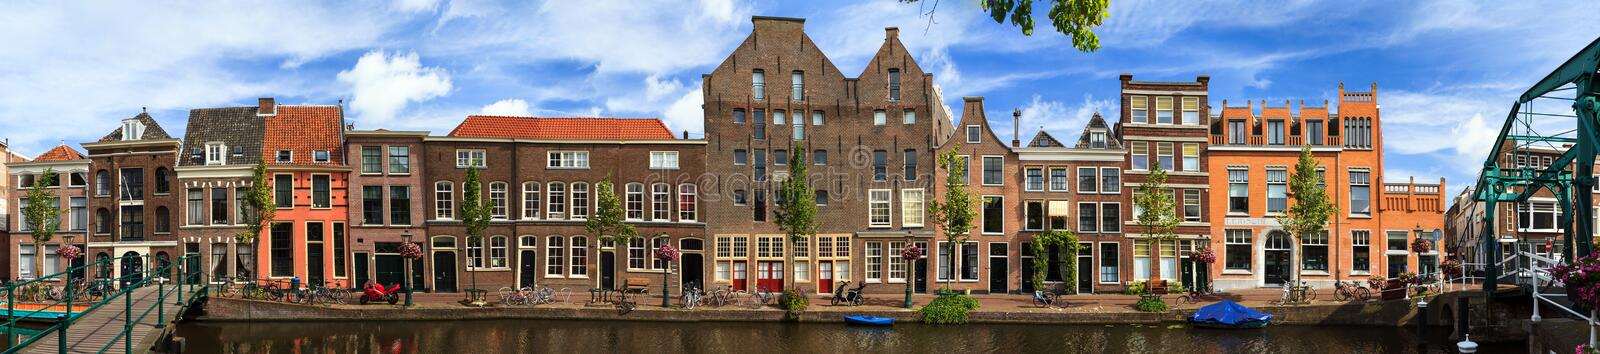 Leiden linear panorama. Beautiful Linear panorama of the Oude Rijn canal cityscape in Leiden, The Netherlands, in summer royalty free stock photo